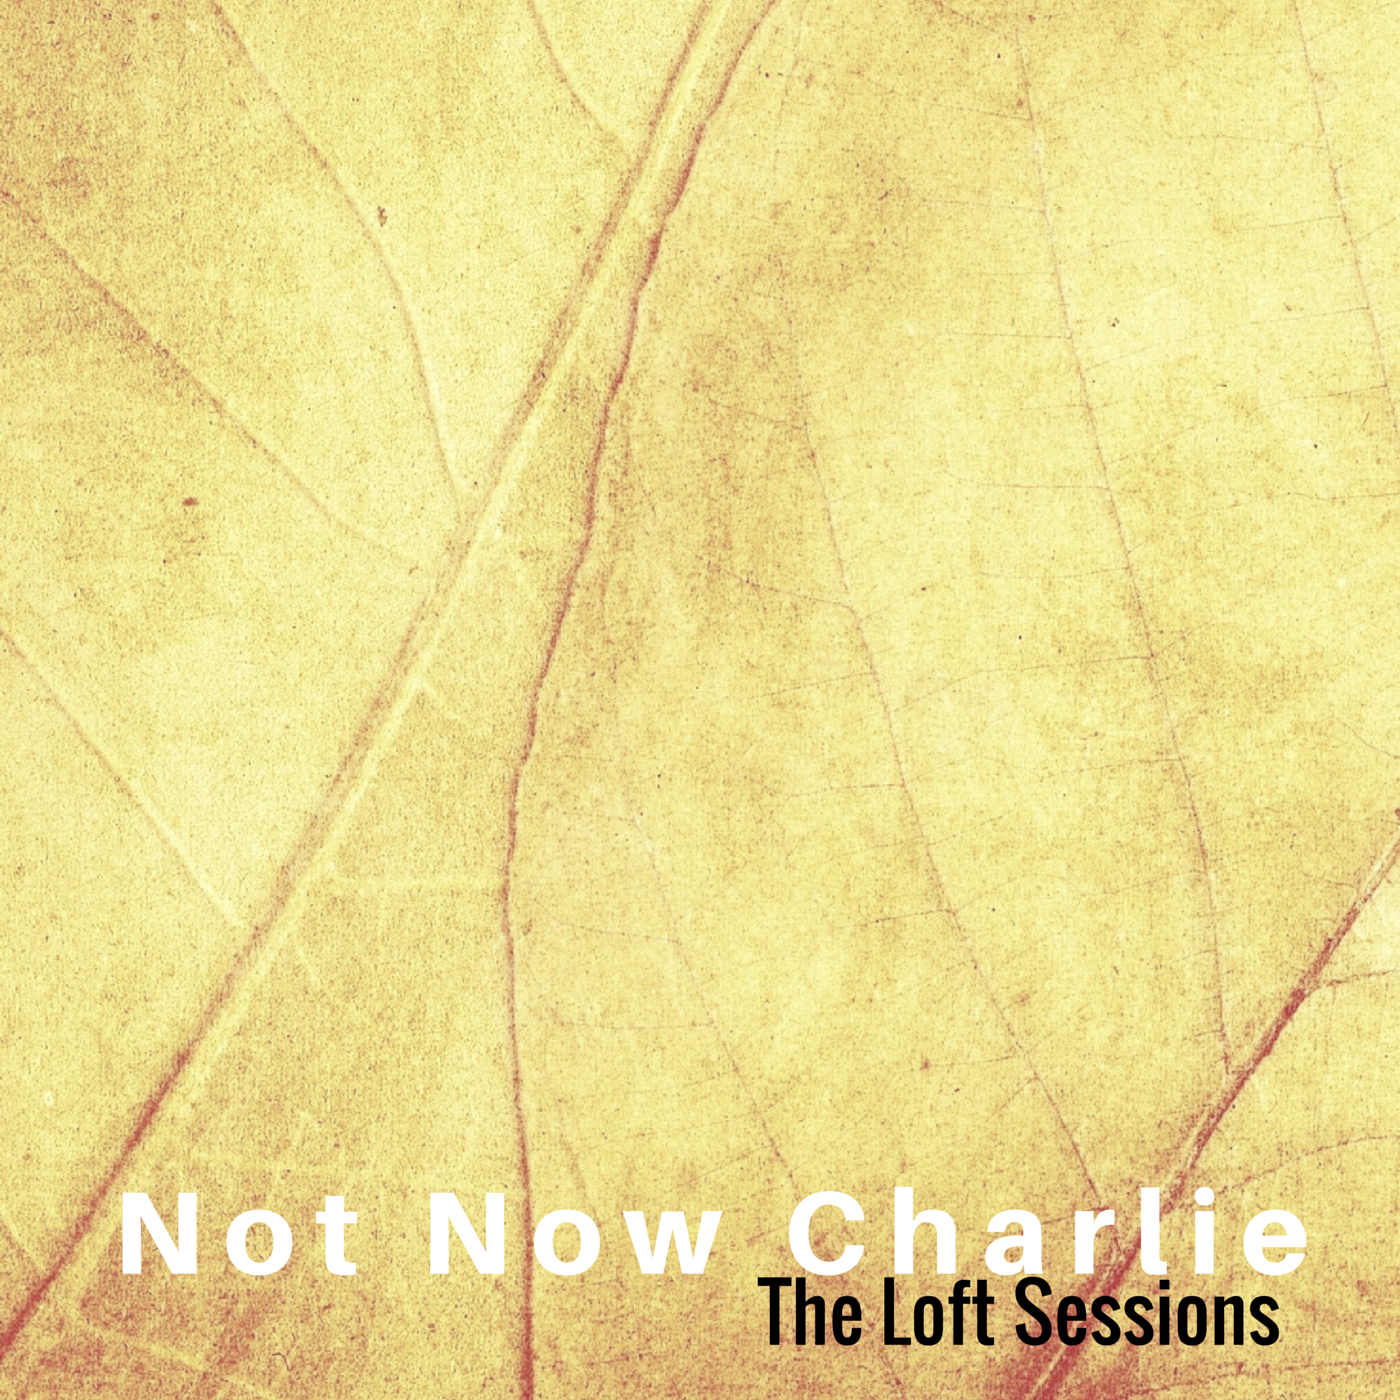 Not Now Charlie - The Loft Sessions